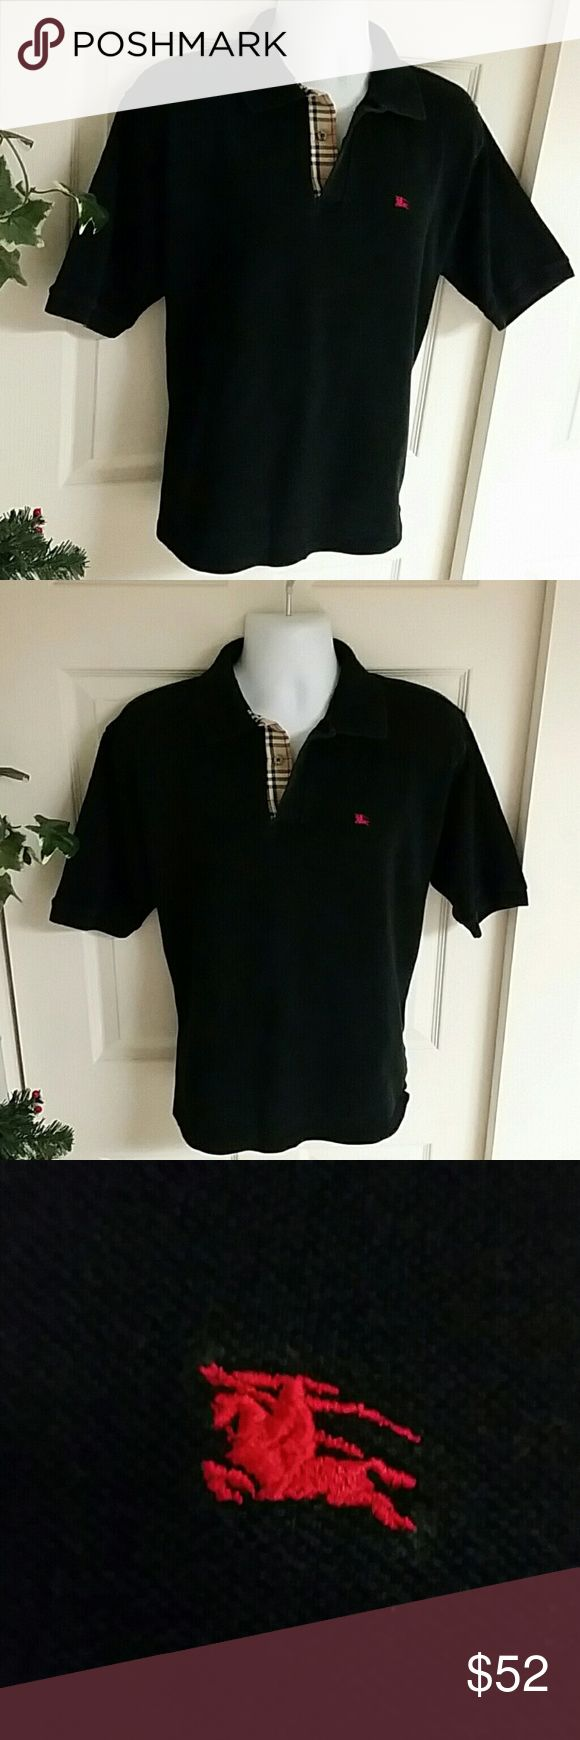 Burberry Polo Shirt Black elegant Burberry Polo shirt.  100% Cotton.  Great condition.   Made in England. Comes with extra Burberry button Burberry Shirts Polos